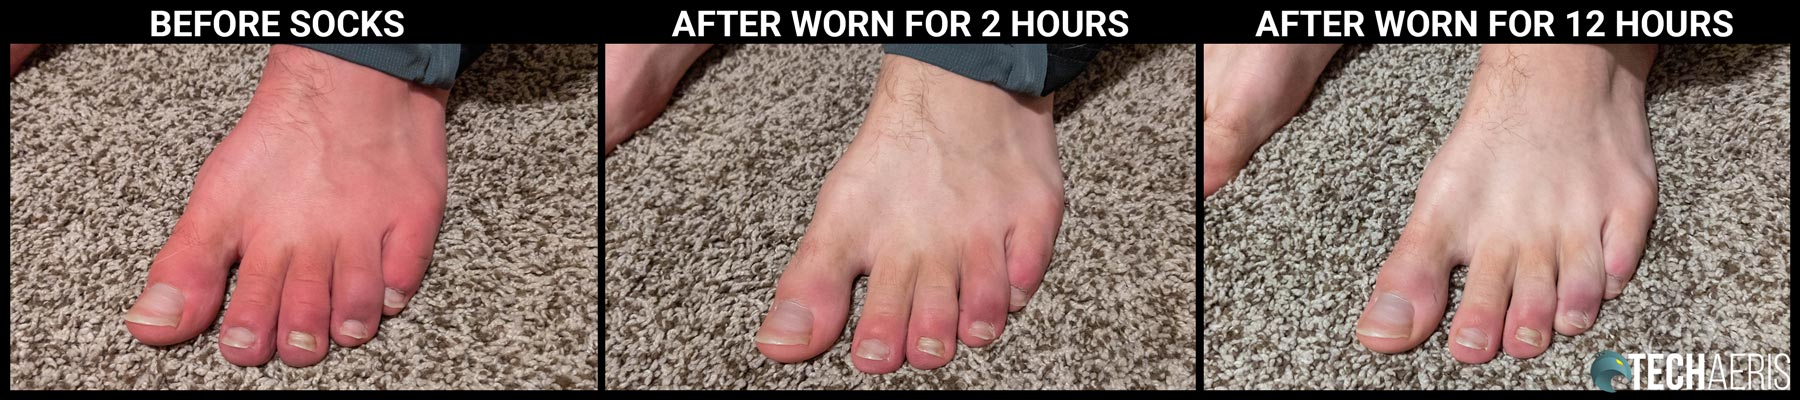 Photos showing feet before, after 2 hours, and after 12 hours of the MP Merino Wool Socks 37.5 being worn